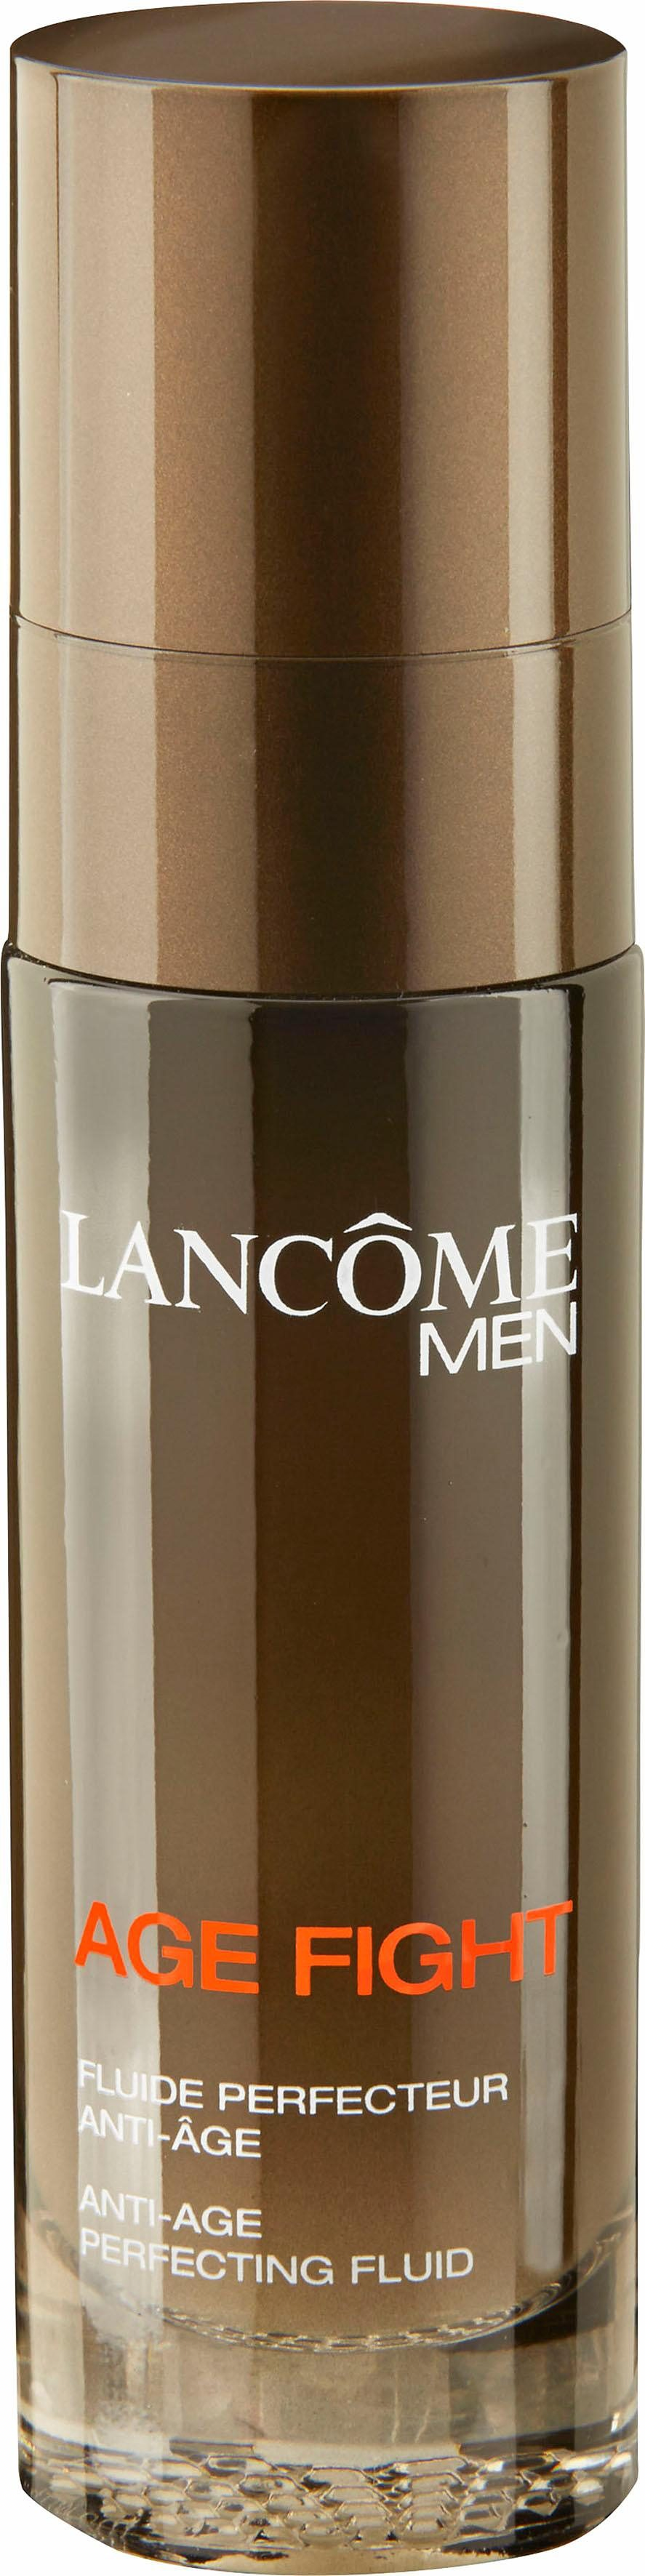 Lancôme Men, »Age Fight Gel Perfecteur«, Glättendes Anti-Aging Fluid